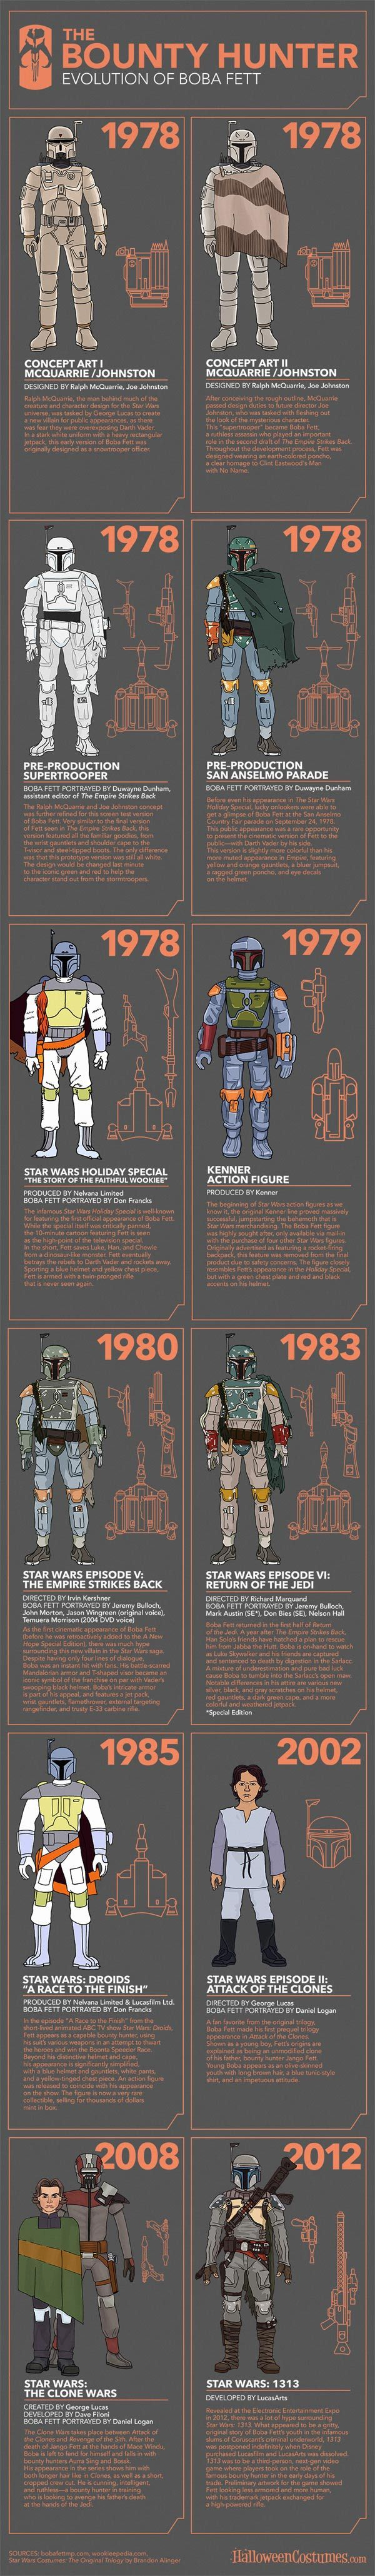 Mandalorian Bounty Hunters: The Evolution of Boba Fett [Infographic] - Geeks are Sexy Technology NewsGeeks are Sexy Technology News